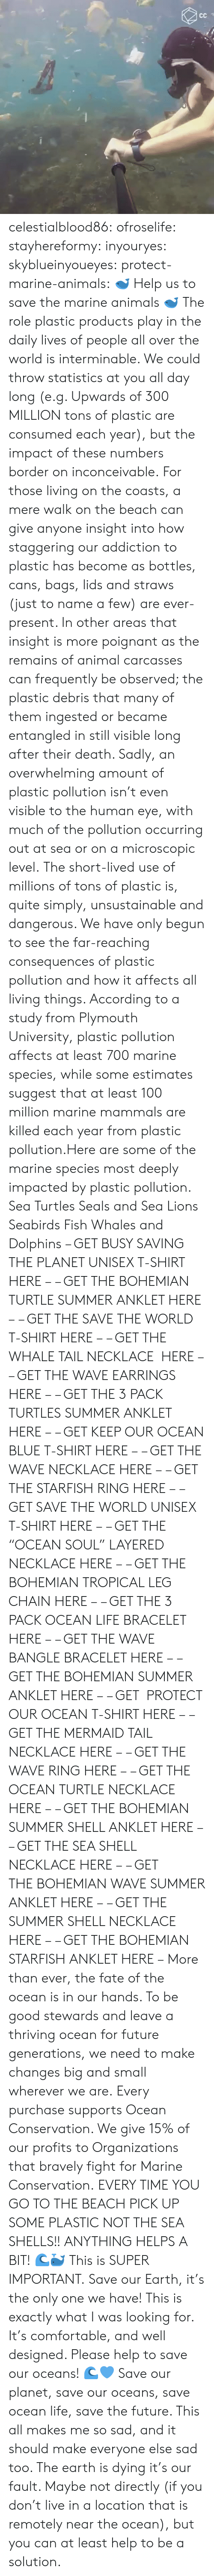 "living things: celestialblood86:  ofroselife: stayhereformy:  inyouryes:  skyblueinyoueyes:  protect-marine-animals:  🐋 Help us to save the marine animals 🐋 The role plastic products play in the daily lives of people all over the world is interminable. We could throw statistics at you all day long (e.g. Upwards of 300 MILLION tons of plastic are consumed each year), but the impact of these numbers border on inconceivable. For those living on the coasts, a mere walk on the beach can give anyone insight into how staggering our addiction to plastic has become as bottles, cans, bags, lids and straws (just to name a few) are ever-present. In other areas that insight is more poignant as the remains of animal carcasses can frequently be observed; the plastic debris that many of them ingested or became entangled in still visible long after their death. Sadly, an overwhelming amount of plastic pollution isn't even visible to the human eye, with much of the pollution occurring out at sea or on a microscopic level. The short-lived use of millions of tons of plastic is, quite simply, unsustainable and dangerous. We have only begun to see the far-reaching consequences of plastic pollution and how it affects all living things. According to a study from Plymouth University, plastic pollution affects at least 700 marine species, while some estimates suggest that at least 100 million marine mammals are killed each year from plastic pollution.Here are some of the marine species most deeply impacted by plastic pollution. Sea Turtles Seals and Sea Lions Seabirds Fish Whales and Dolphins – GET BUSY SAVING THE PLANET UNISEX T-SHIRT HERE – – GET THE BOHEMIAN TURTLE SUMMER ANKLET HERE – – GET THE SAVE THE WORLD T-SHIRT HERE – – GET THE WHALE TAIL NECKLACE  HERE – – GET THE WAVE EARRINGS HERE – – GET THE 3 PACK TURTLES SUMMER ANKLET HERE – – GET KEEP OUR OCEAN BLUE T-SHIRT HERE – – GET THE WAVE NECKLACE HERE – – GET THE STARFISH RING HERE – – GET SAVE THE WORLD UNISEX T-SHIRT HERE – – GET THE ""OCEAN SOUL"" LAYERED NECKLACE HERE – – GET THE BOHEMIAN TROPICAL LEG CHAIN HERE – – GET THE 3 PACK OCEAN LIFE BRACELET HERE – – GET THE WAVE BANGLE BRACELET HERE – – GET THE BOHEMIAN SUMMER ANKLET HERE – – GET  PROTECT OUR OCEAN T-SHIRT HERE – – GET THE MERMAID TAIL NECKLACE HERE – – GET THE WAVE RING HERE – – GET THE OCEAN TURTLE NECKLACE HERE – – GET THE BOHEMIAN SUMMER SHELL ANKLET HERE – – GET THE SEA SHELL NECKLACE HERE – – GET THE BOHEMIAN WAVE SUMMER ANKLET HERE – – GET THE SUMMER SHELL NECKLACE HERE – – GET THE BOHEMIAN STARFISH ANKLET HERE – More than ever, the fate of the ocean is in our hands. To be good stewards and leave a thriving ocean for future generations, we need to make changes big and small wherever we are. Every purchase supports Ocean Conservation. We give 15% of our profits to Organizations that bravely fight for Marine Conservation.  EVERY TIME YOU GO TO THE BEACH PICK UP SOME PLASTIC NOT THE SEA SHELLS!! ANYTHING HELPS A BIT! 🌊🐳  This is SUPER IMPORTANT.  Save our Earth, it's the only one we have!  This is exactly what I was looking for. It's comfortable, and well designed. Please help to save our oceans! 🌊💙  Save our planet, save our oceans, save ocean life, save the future. This all makes me so sad, and it should make everyone else sad too. The earth is dying it's our fault. Maybe not directly (if you don't live in a location that is remotely near the ocean), but you can at least help to be a solution."